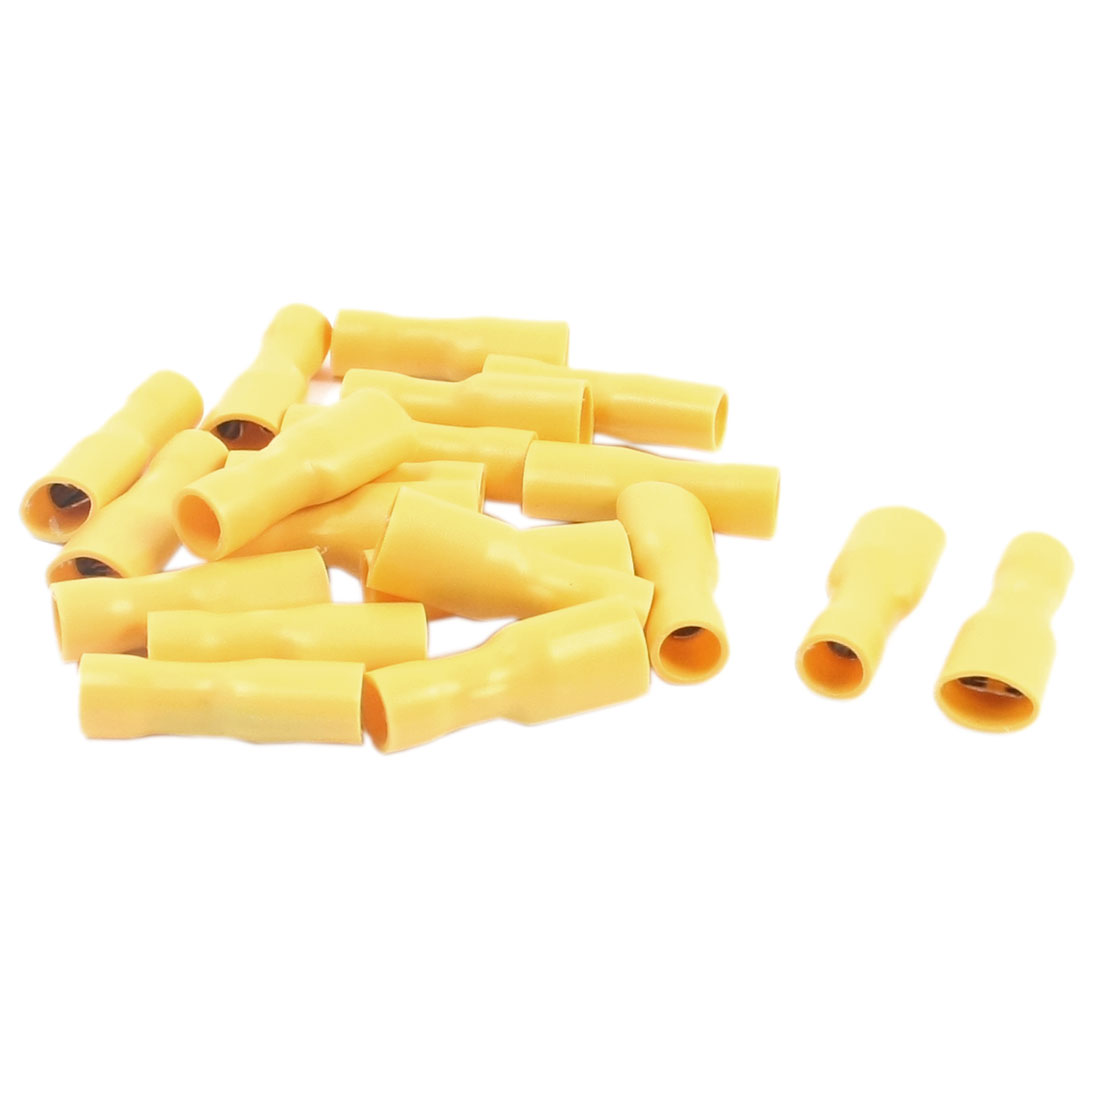 20 Pcs 12-10 AWG Yellow PVC Sleeve Fully Insulated Crimp Terminals Cable Connector